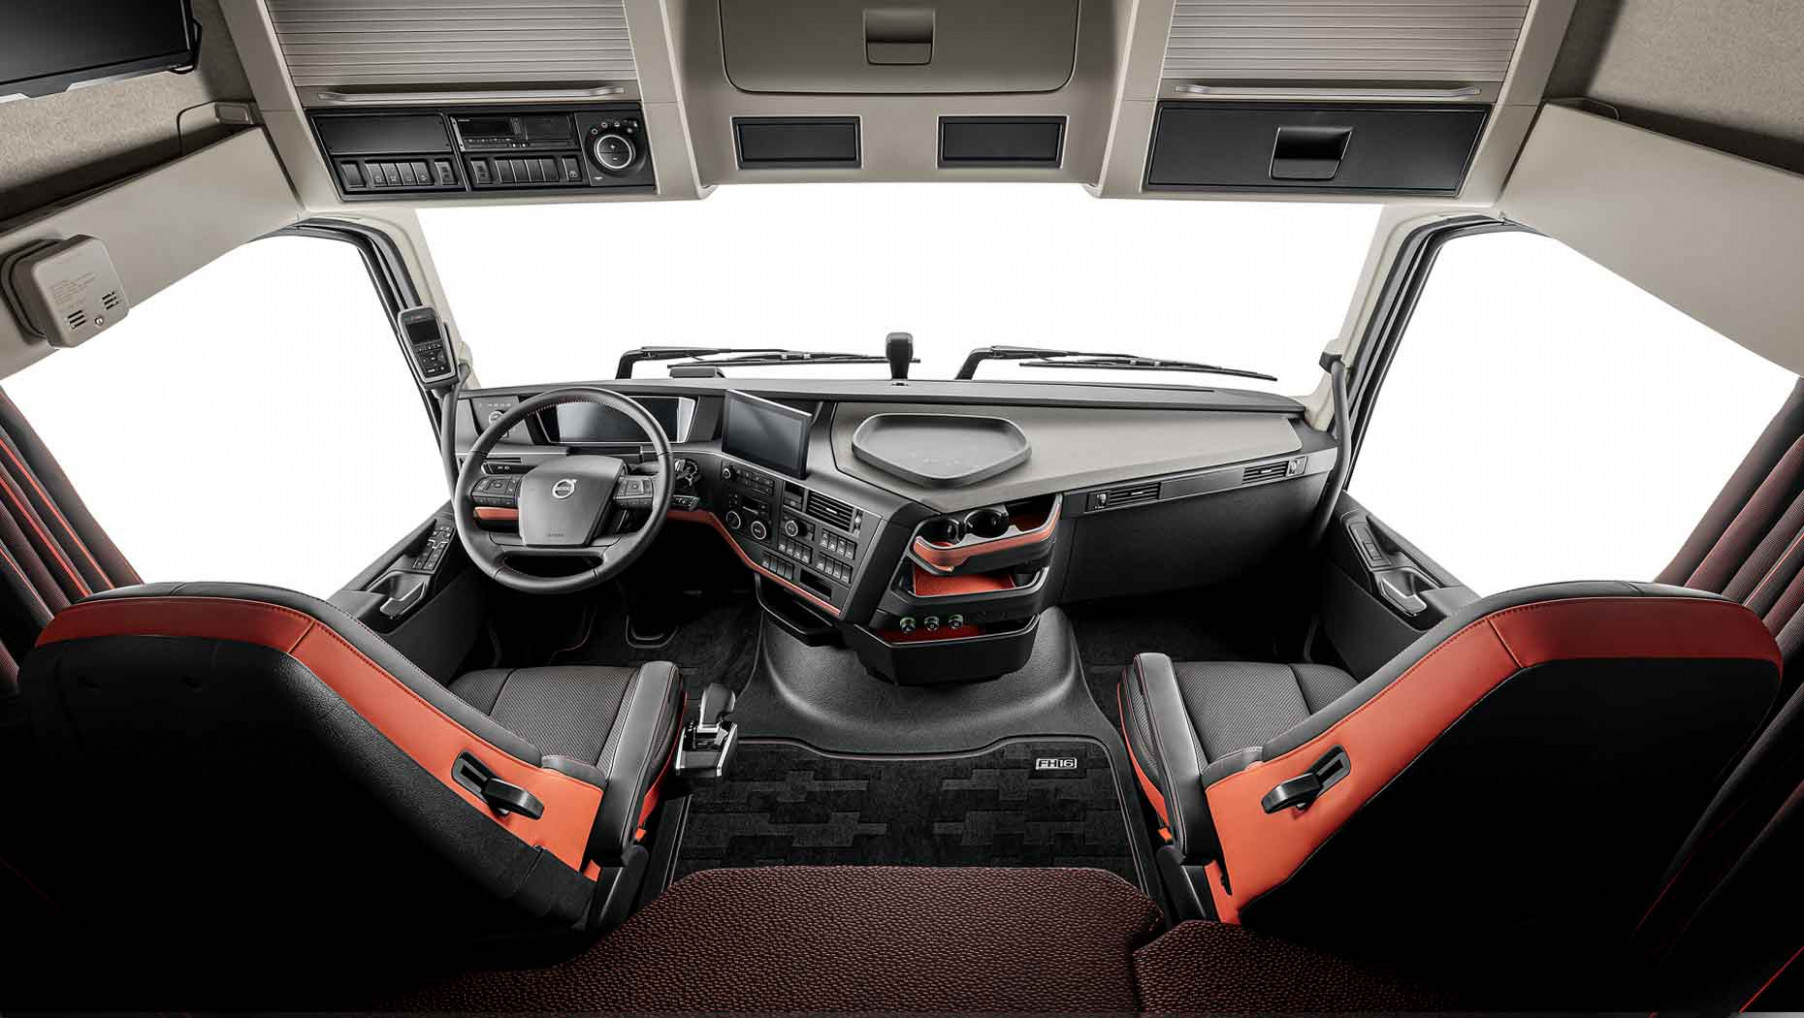 The updated Volvo FH cab interior: built with the driver in mind - volvo truck 2020 interior